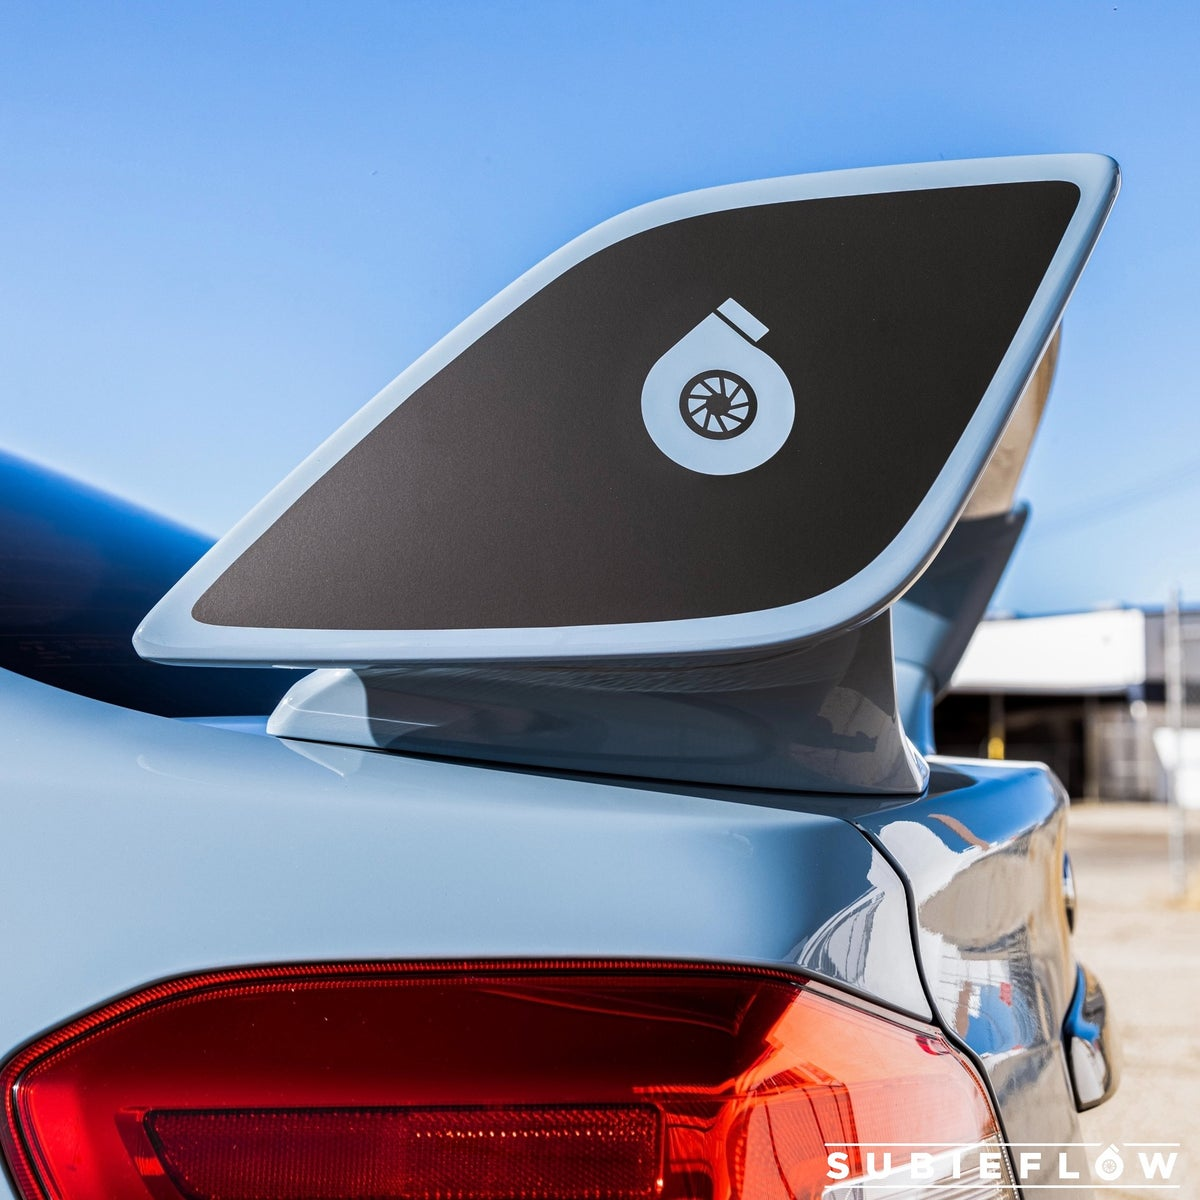 Image of SubieFlow Spoiler Decal